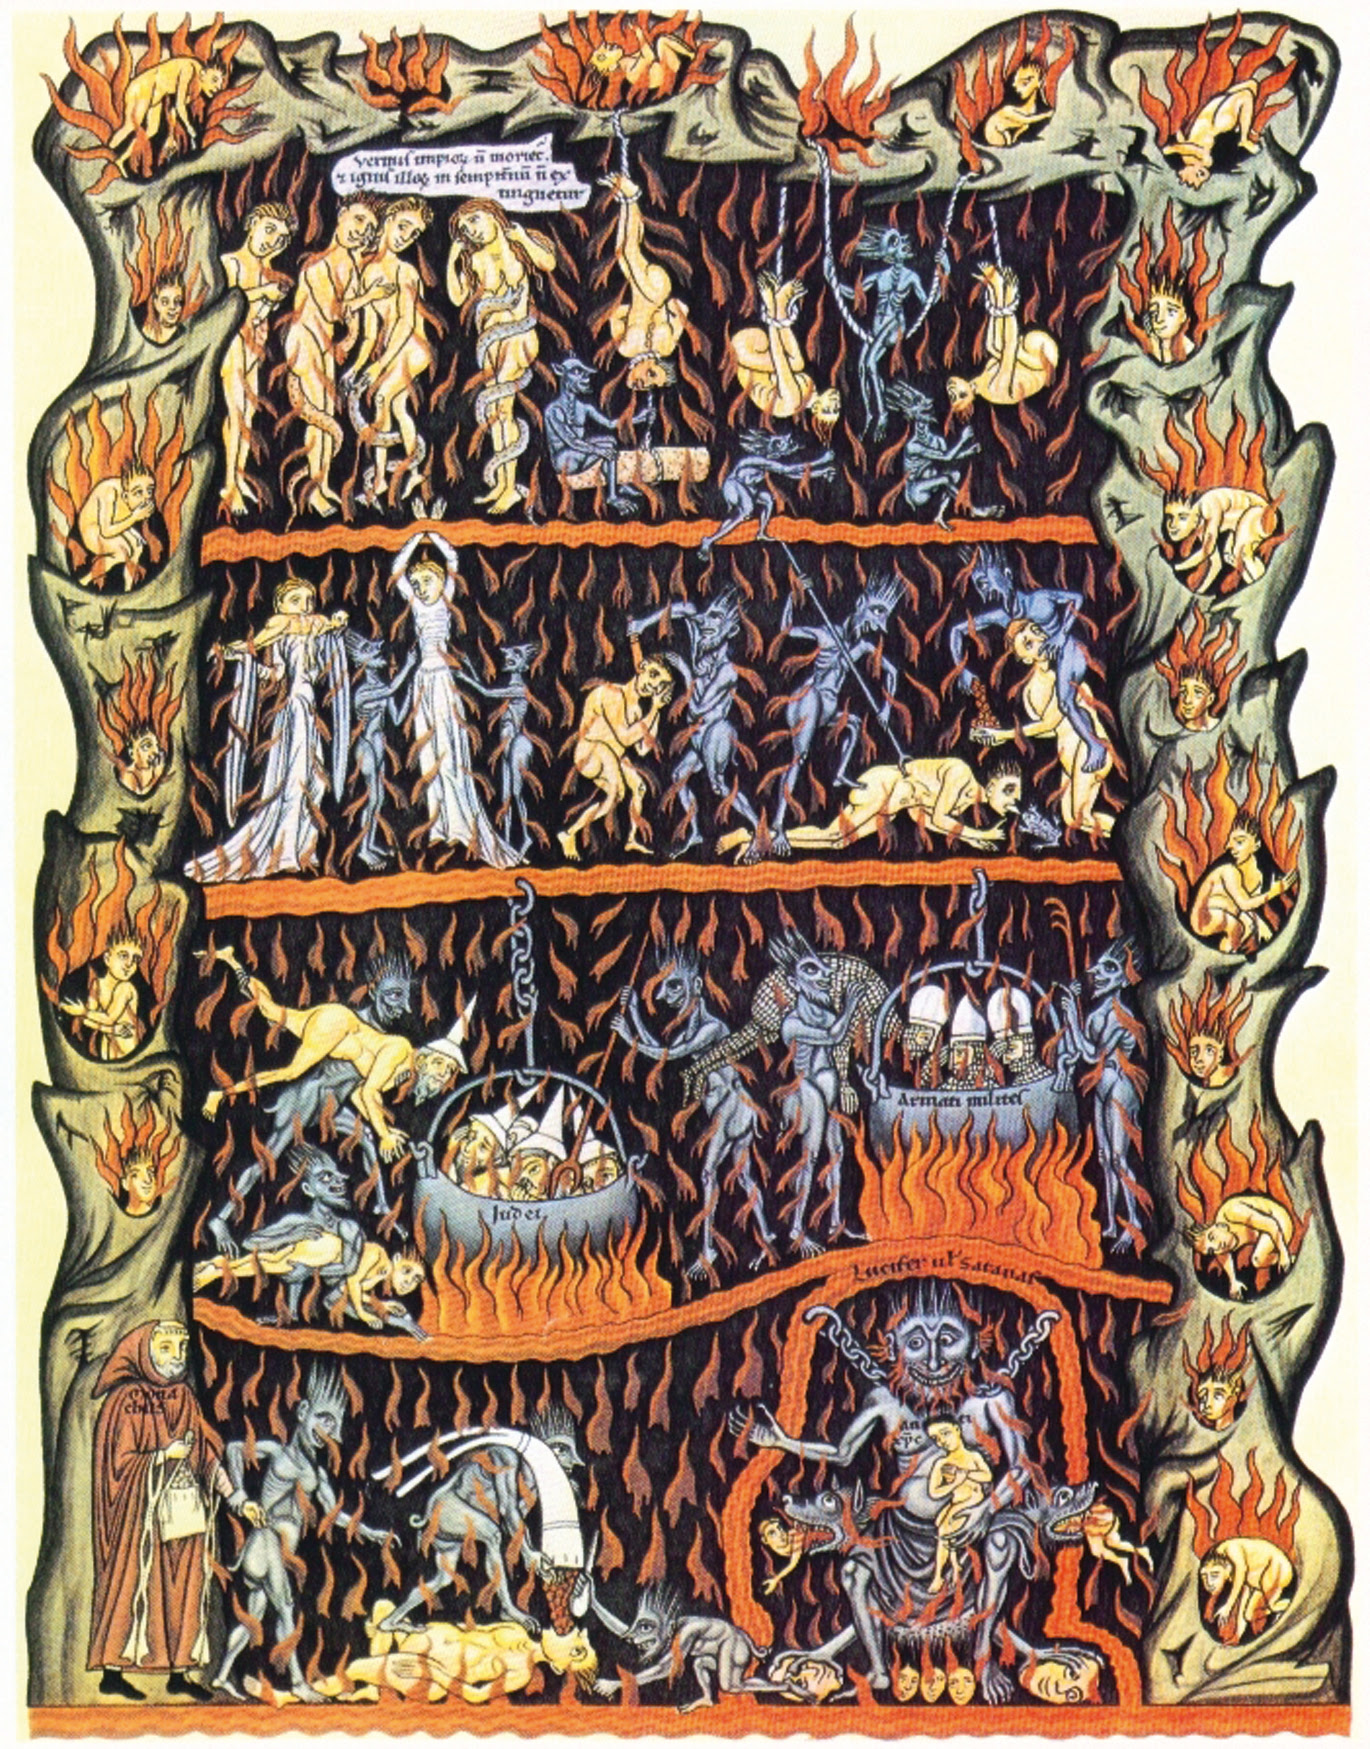 http://upload.wikimedia.org/wikipedia/commons/0/0f/Hortus_Deliciarum_-_Hell.jpg